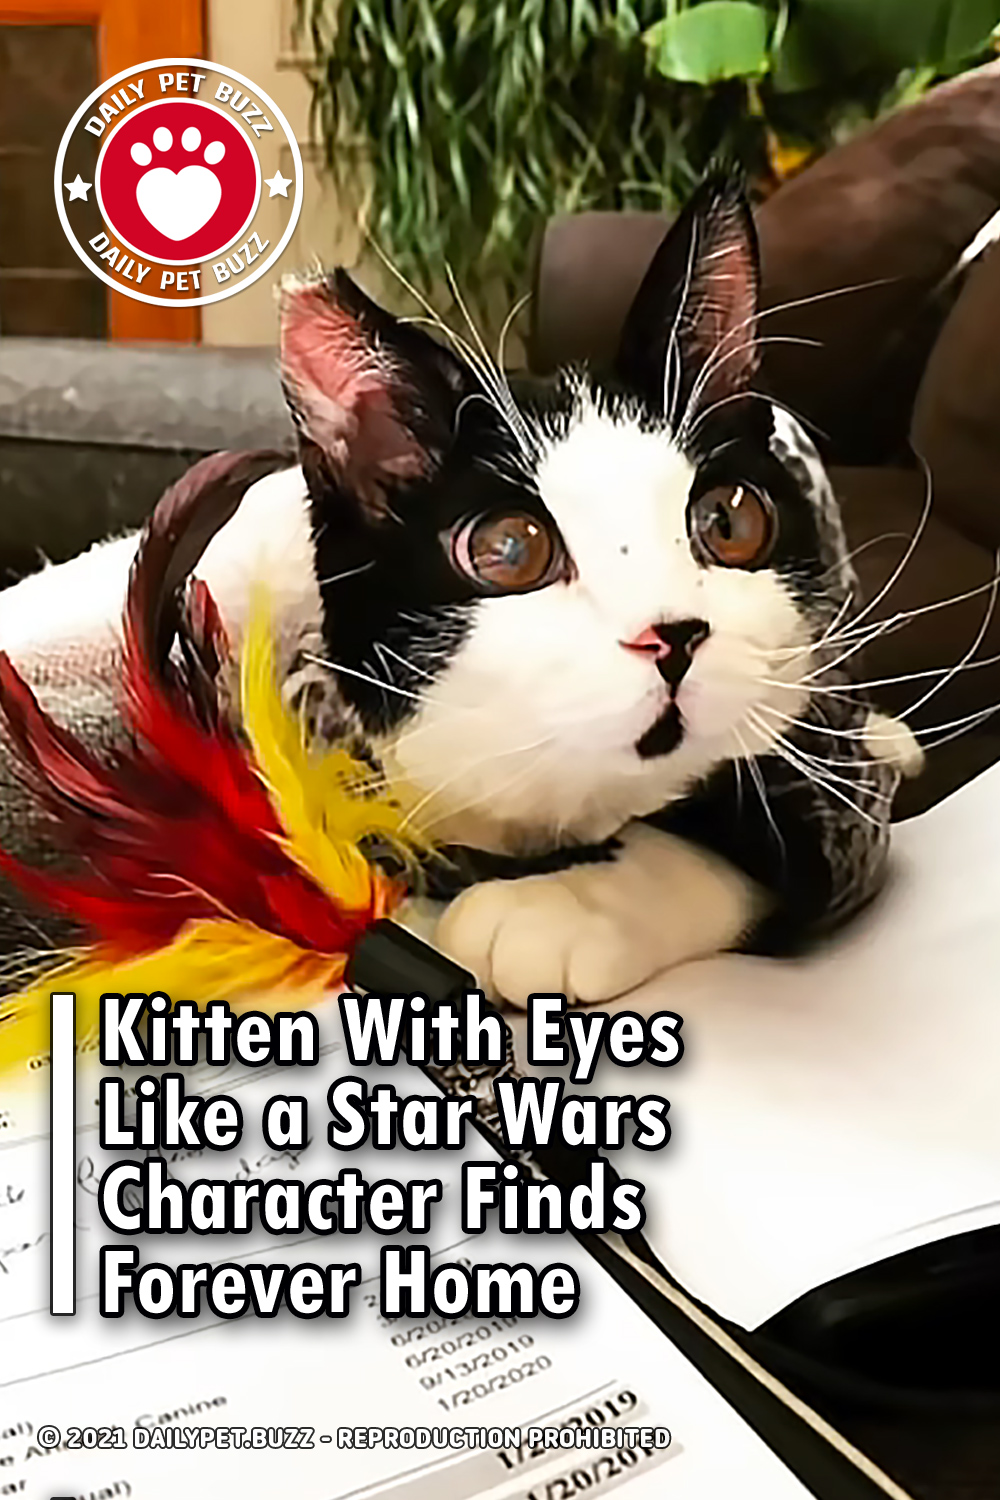 Kitten With Eyes Like a Star Wars Character Finds Forever Home